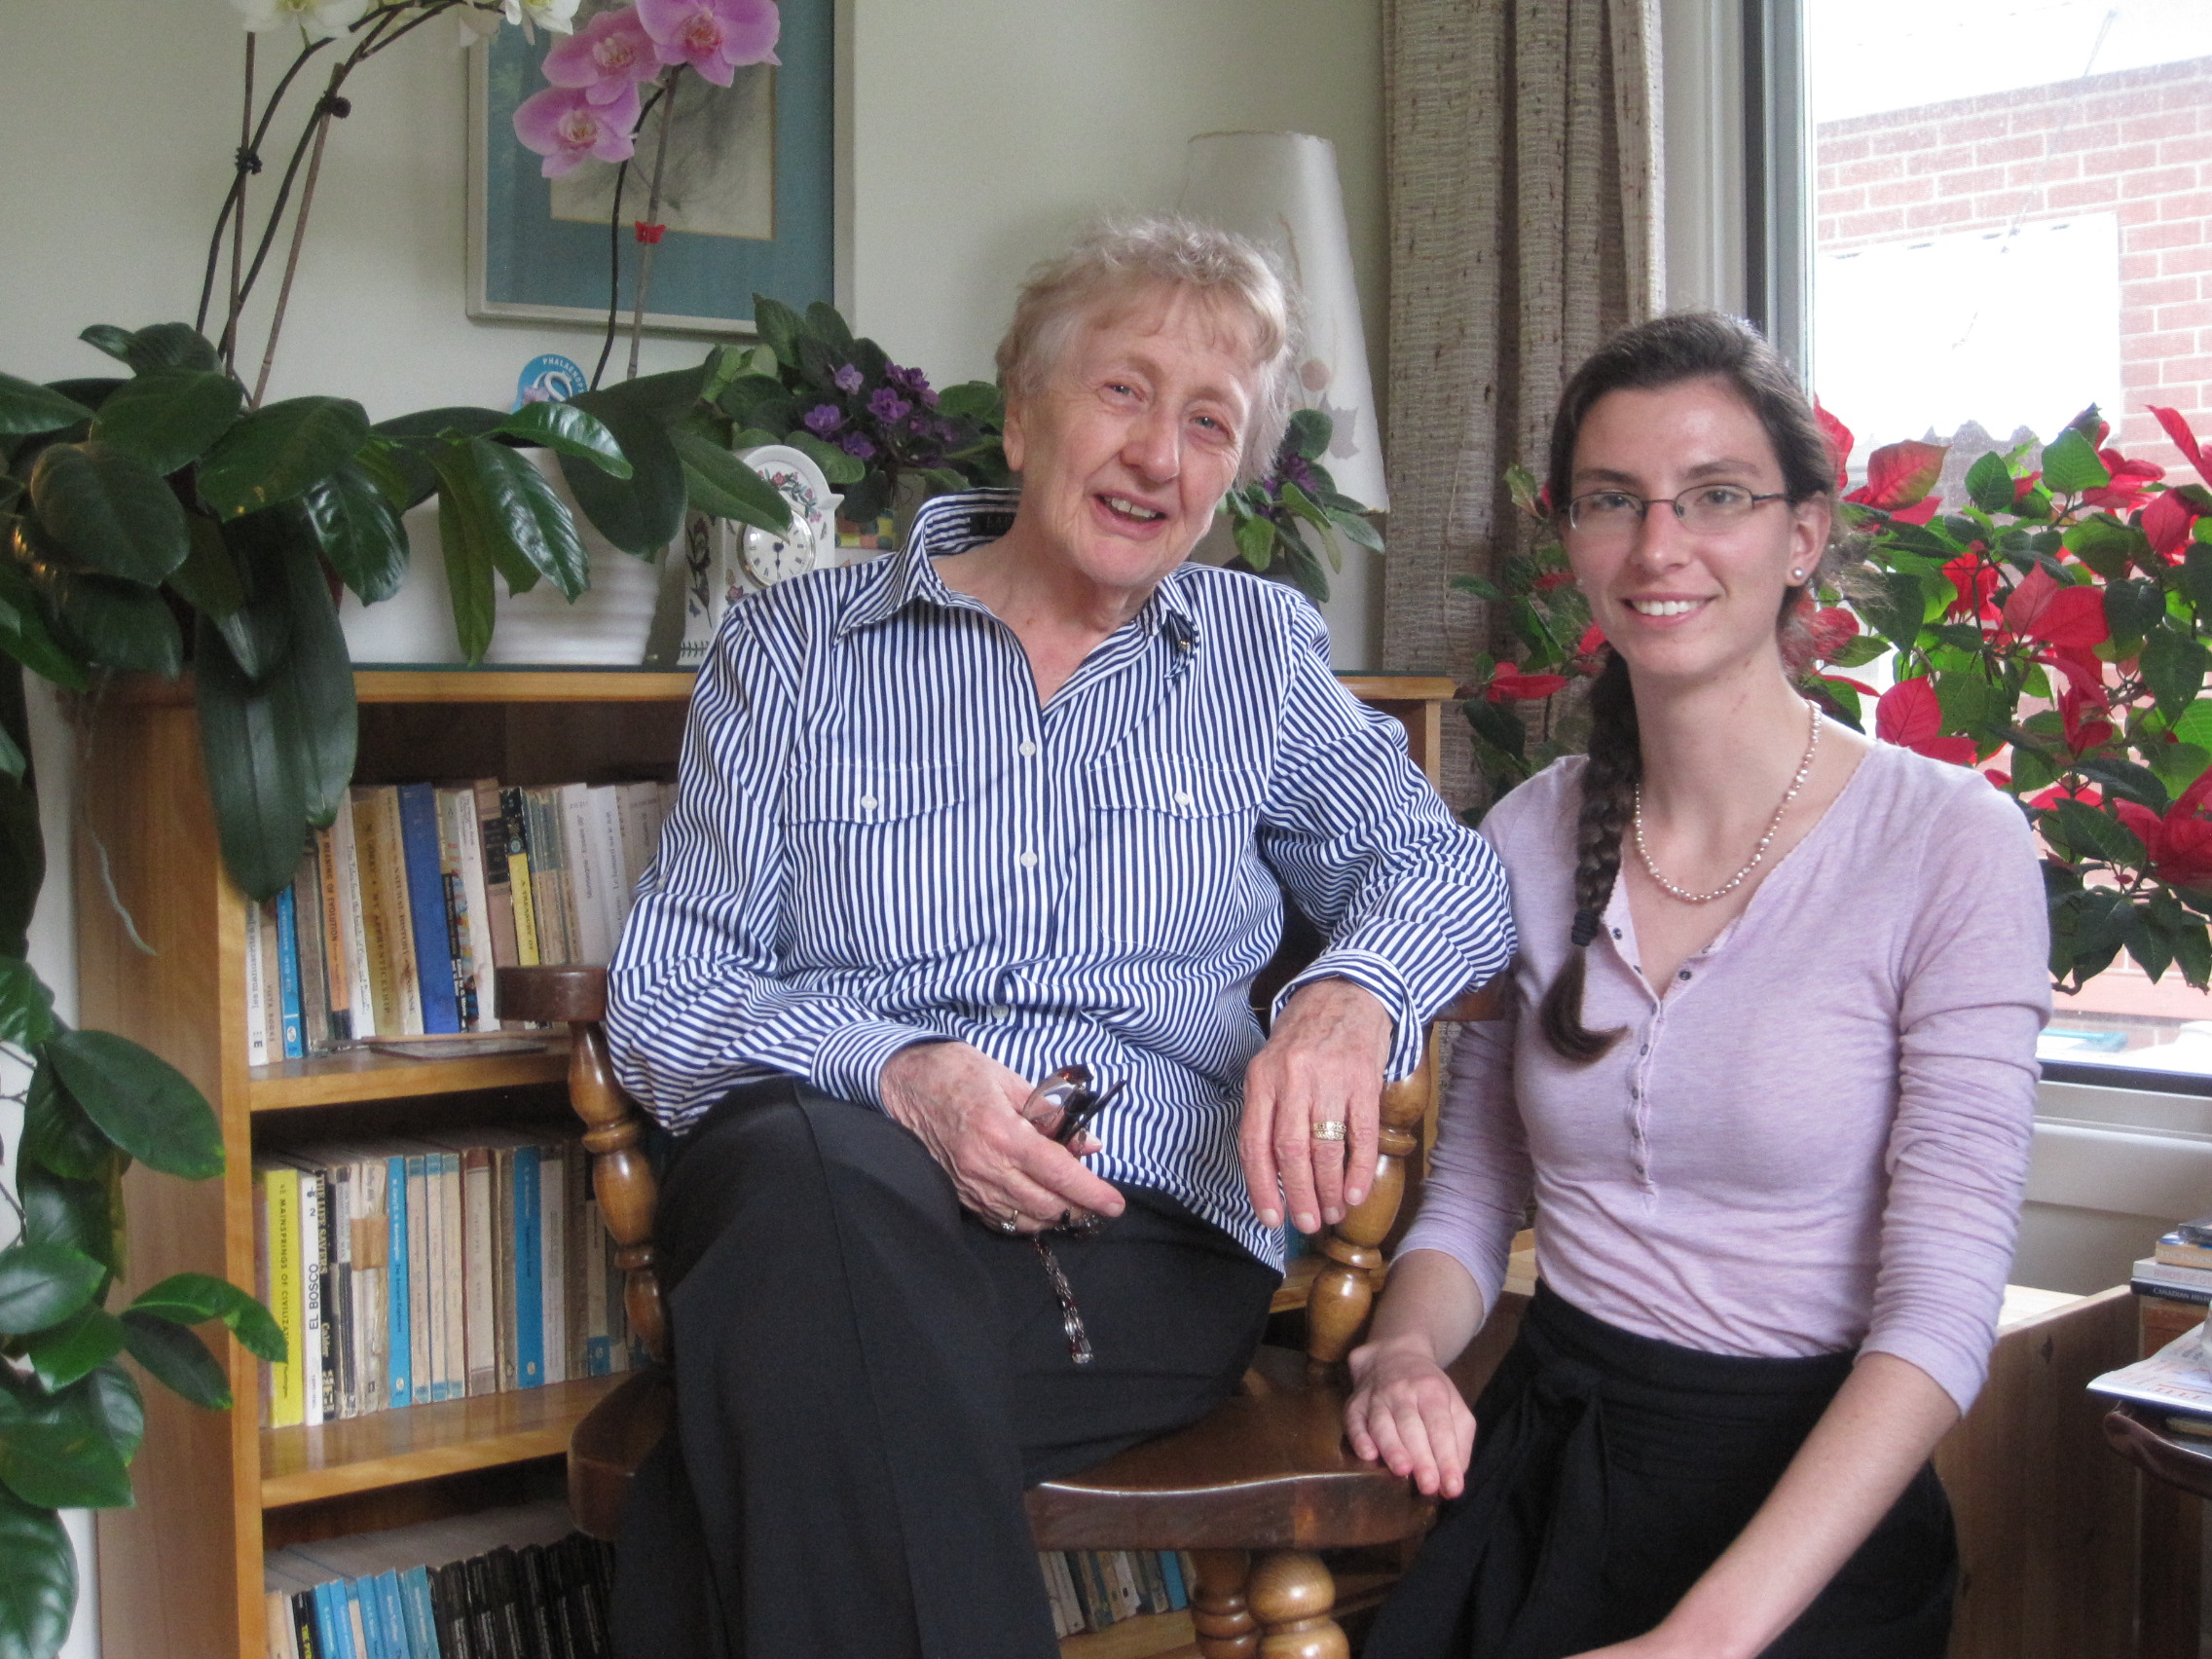 Naomi Griffiths, retired Professor of European, Acadian and Women's history, interviewd by honour's research assistant Katie Menendez, summer 2013